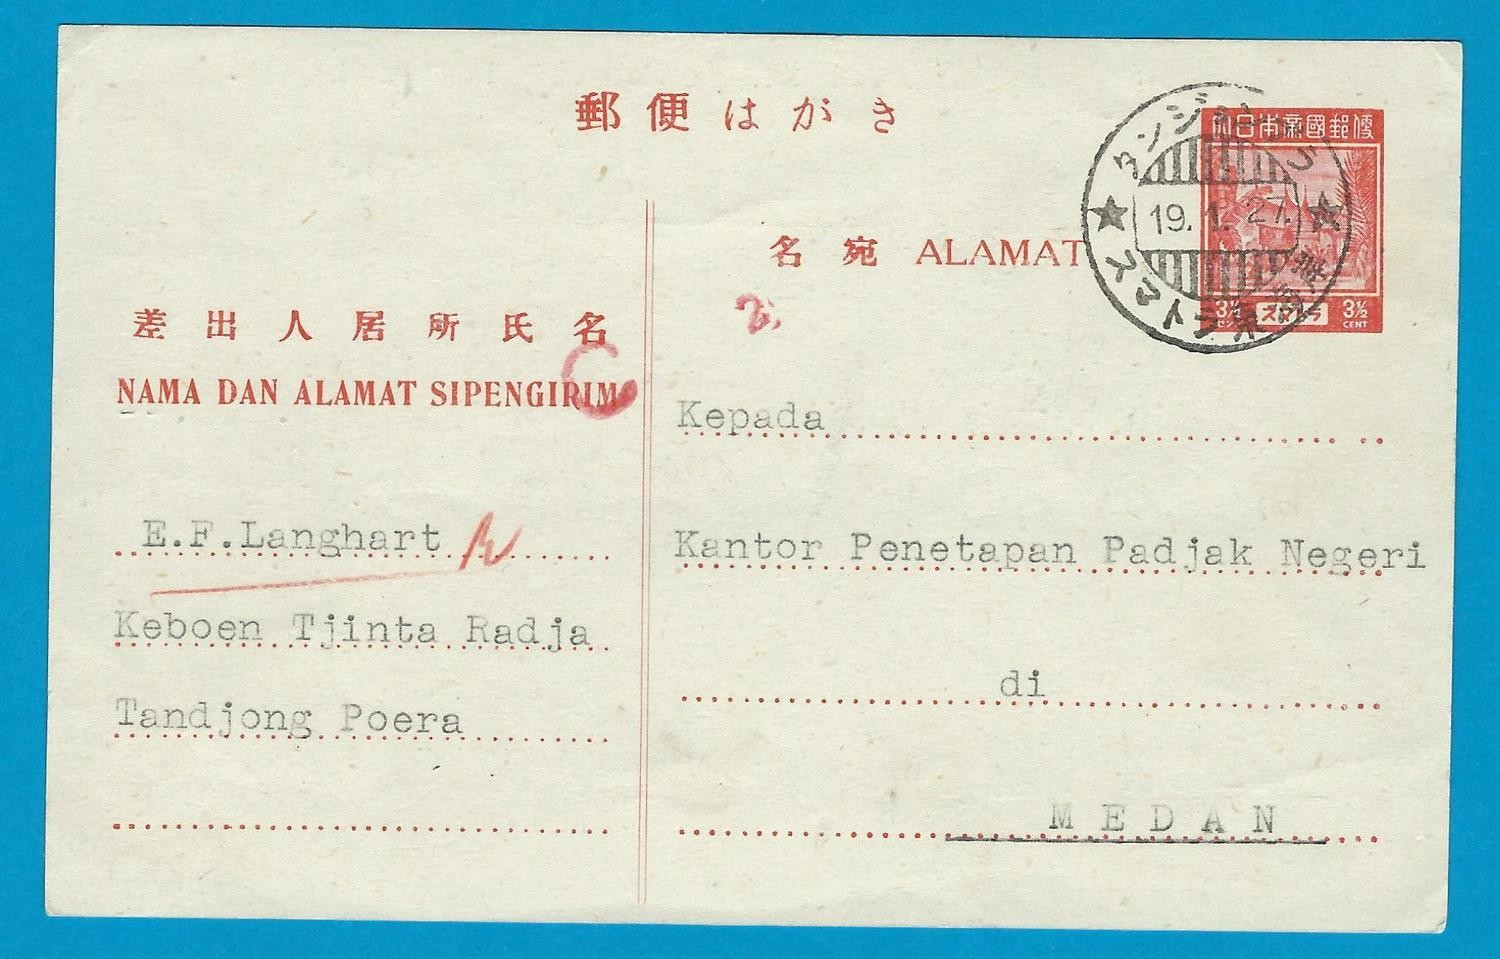 NETHERLANDS INDIES Japanese occupation 1940 Tandjong Poera